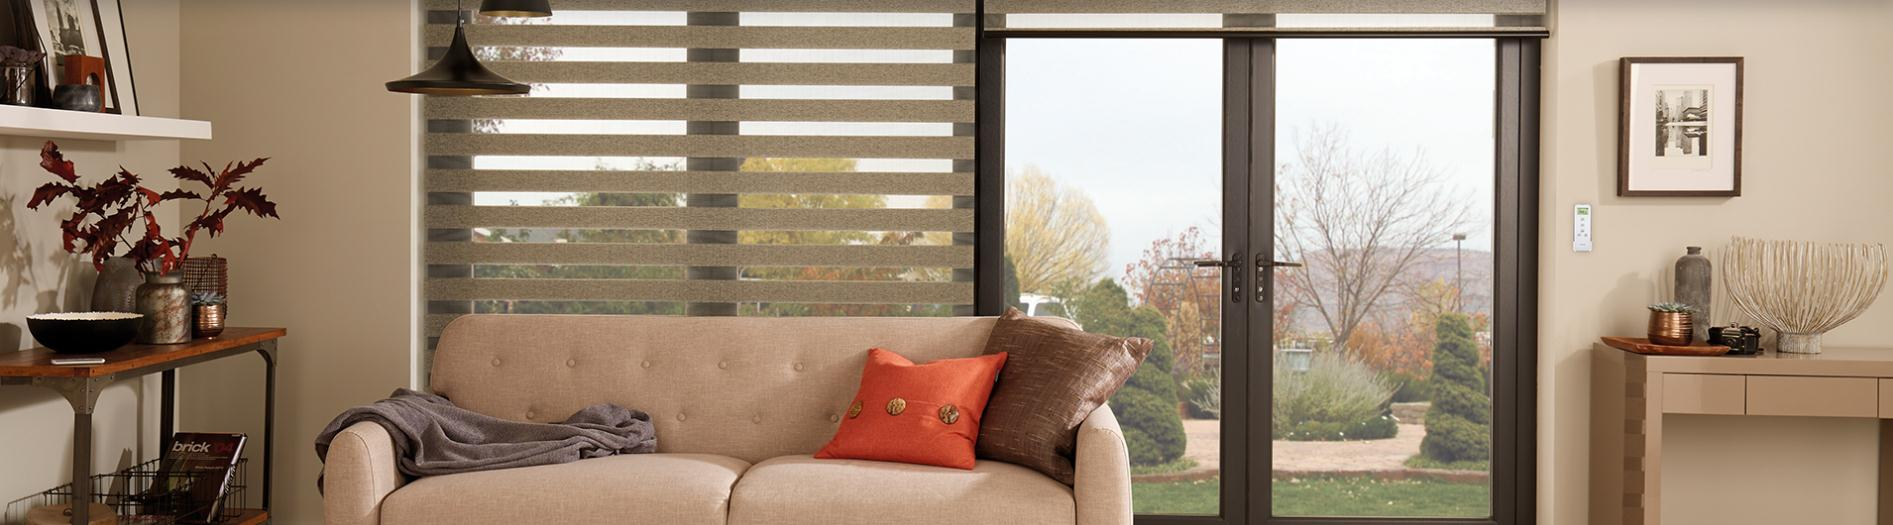 Zebra Blinds in Milton